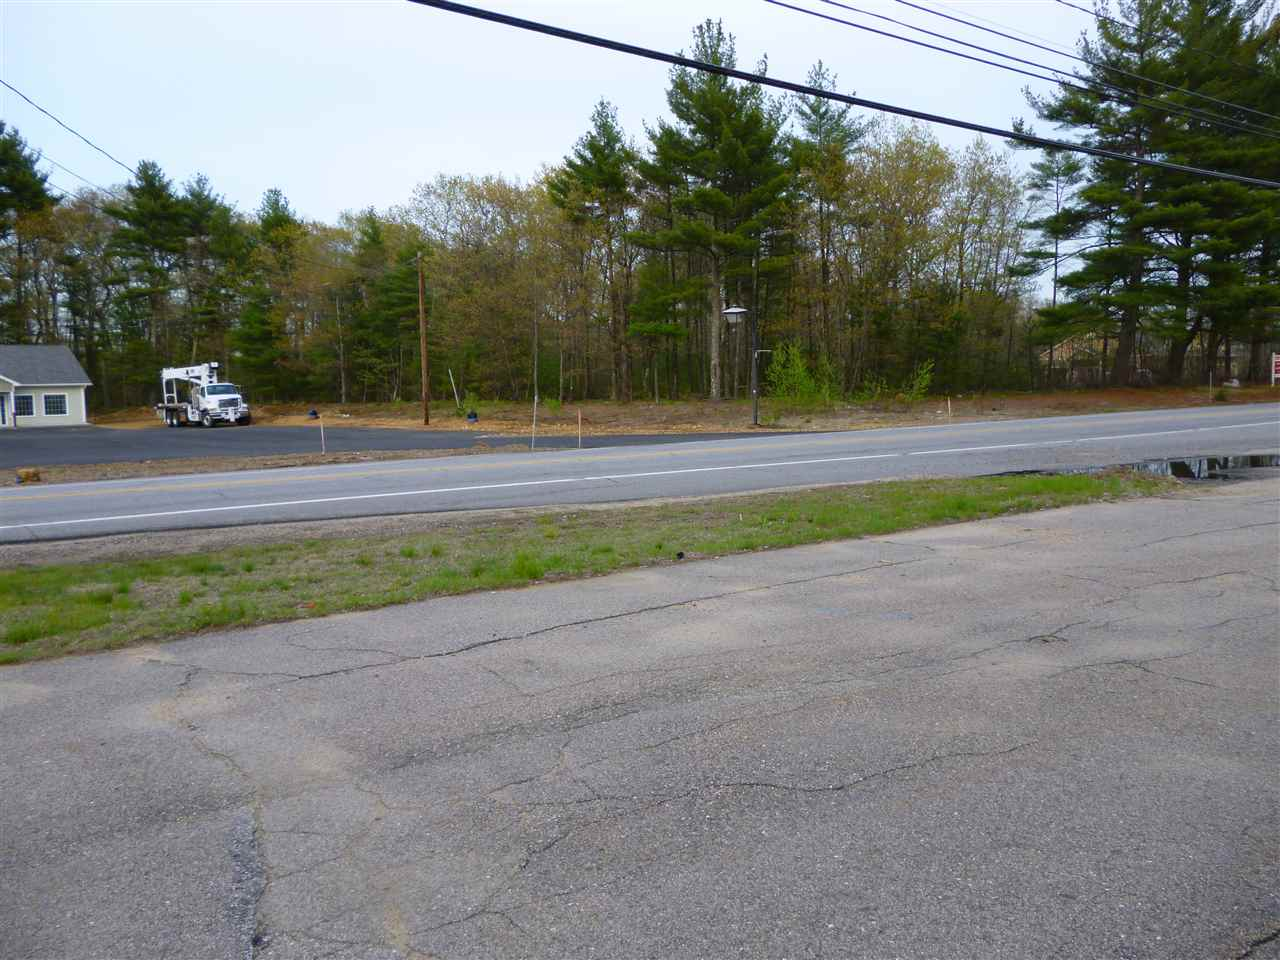 355 Route 108 Common Somersworth NH 03878 in Strafford ...